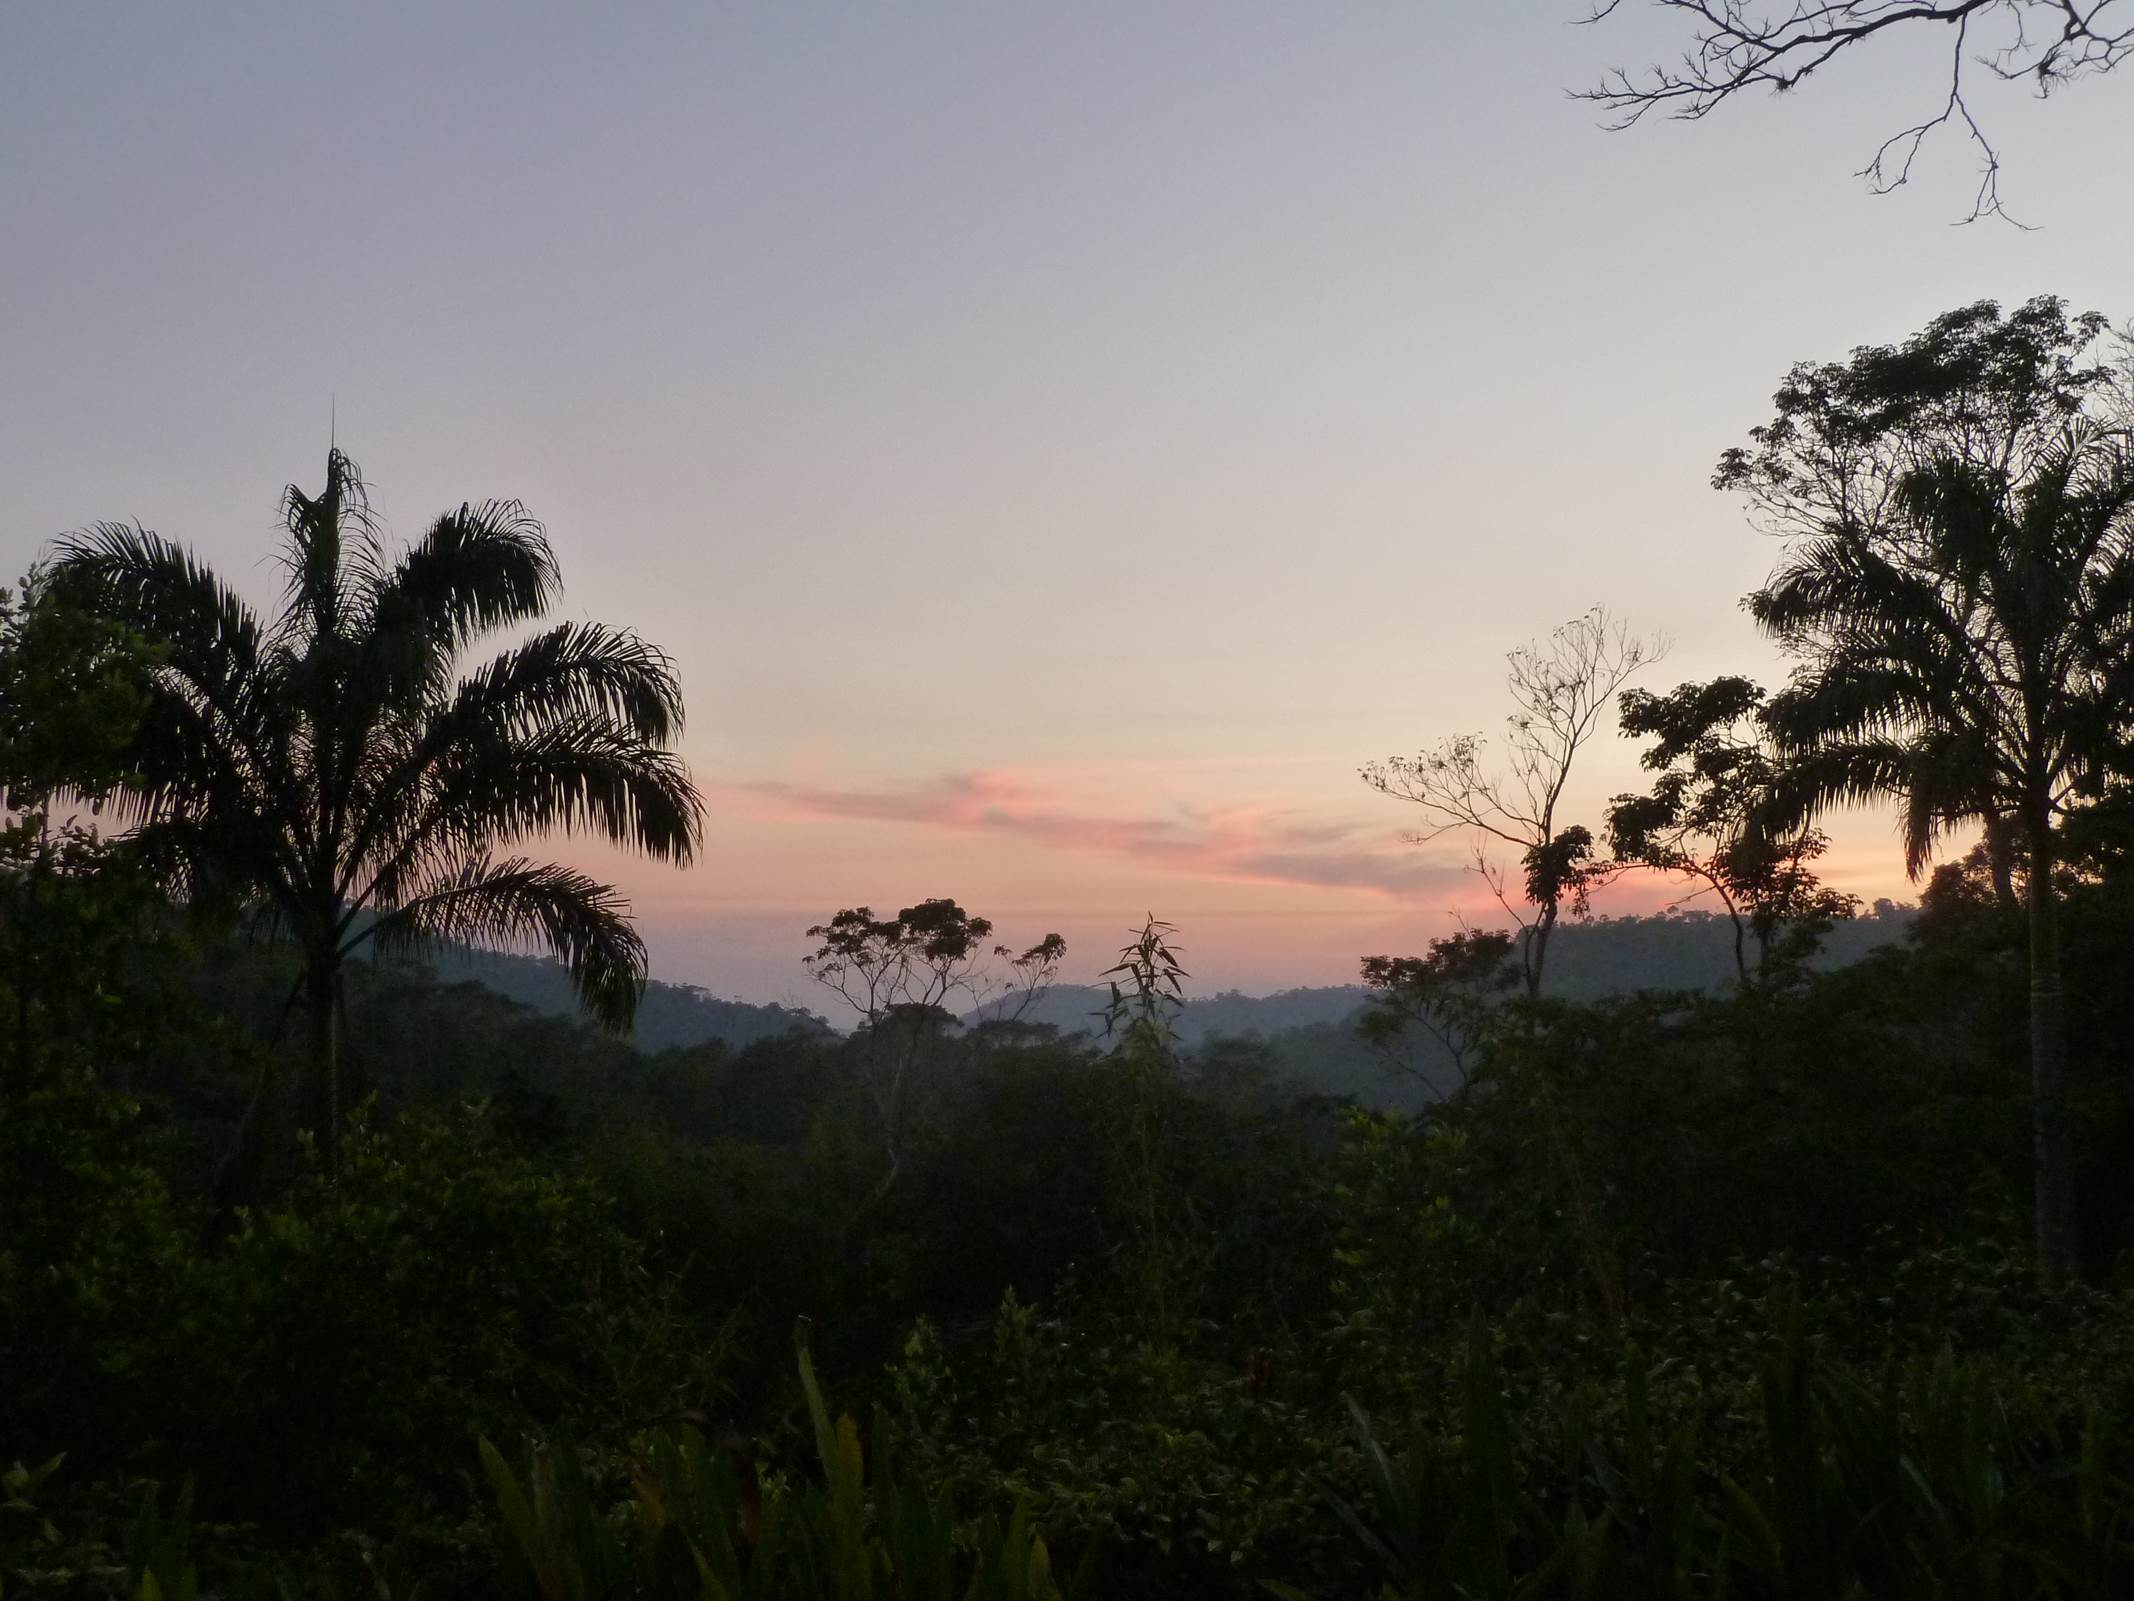 colorful sky over a jungle canopy